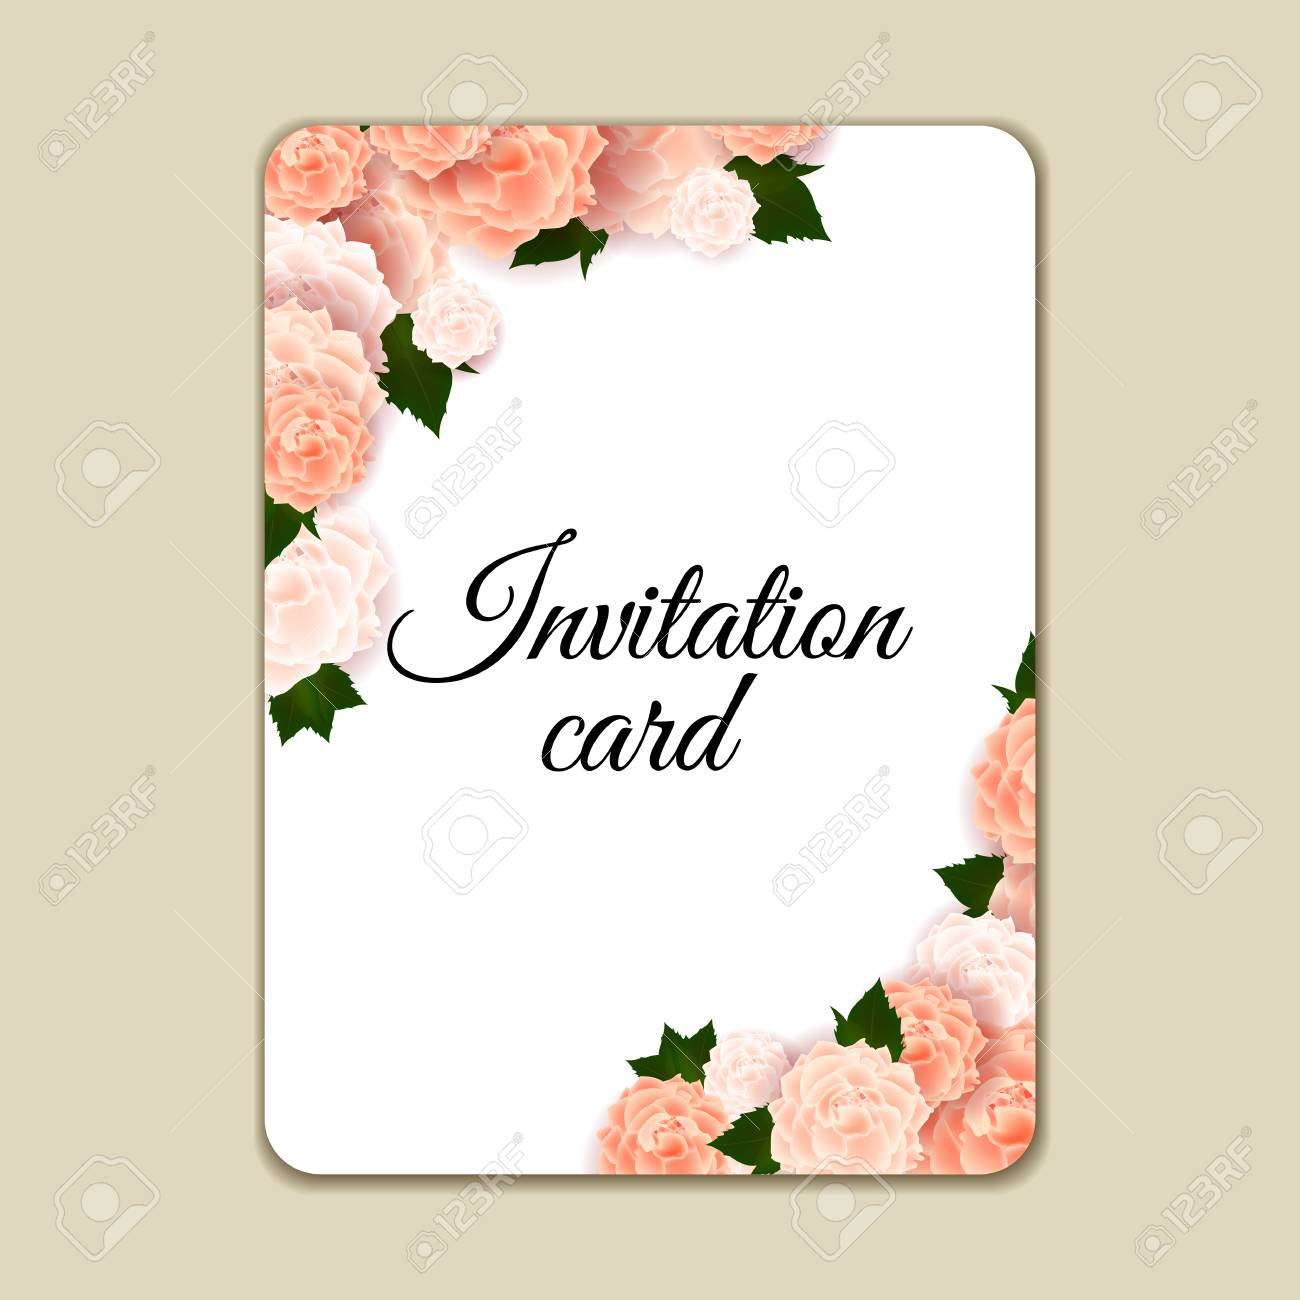 Vintage Floral Invitation Template With Hand Drawn Flowers And with dimensions 1300 X 1300